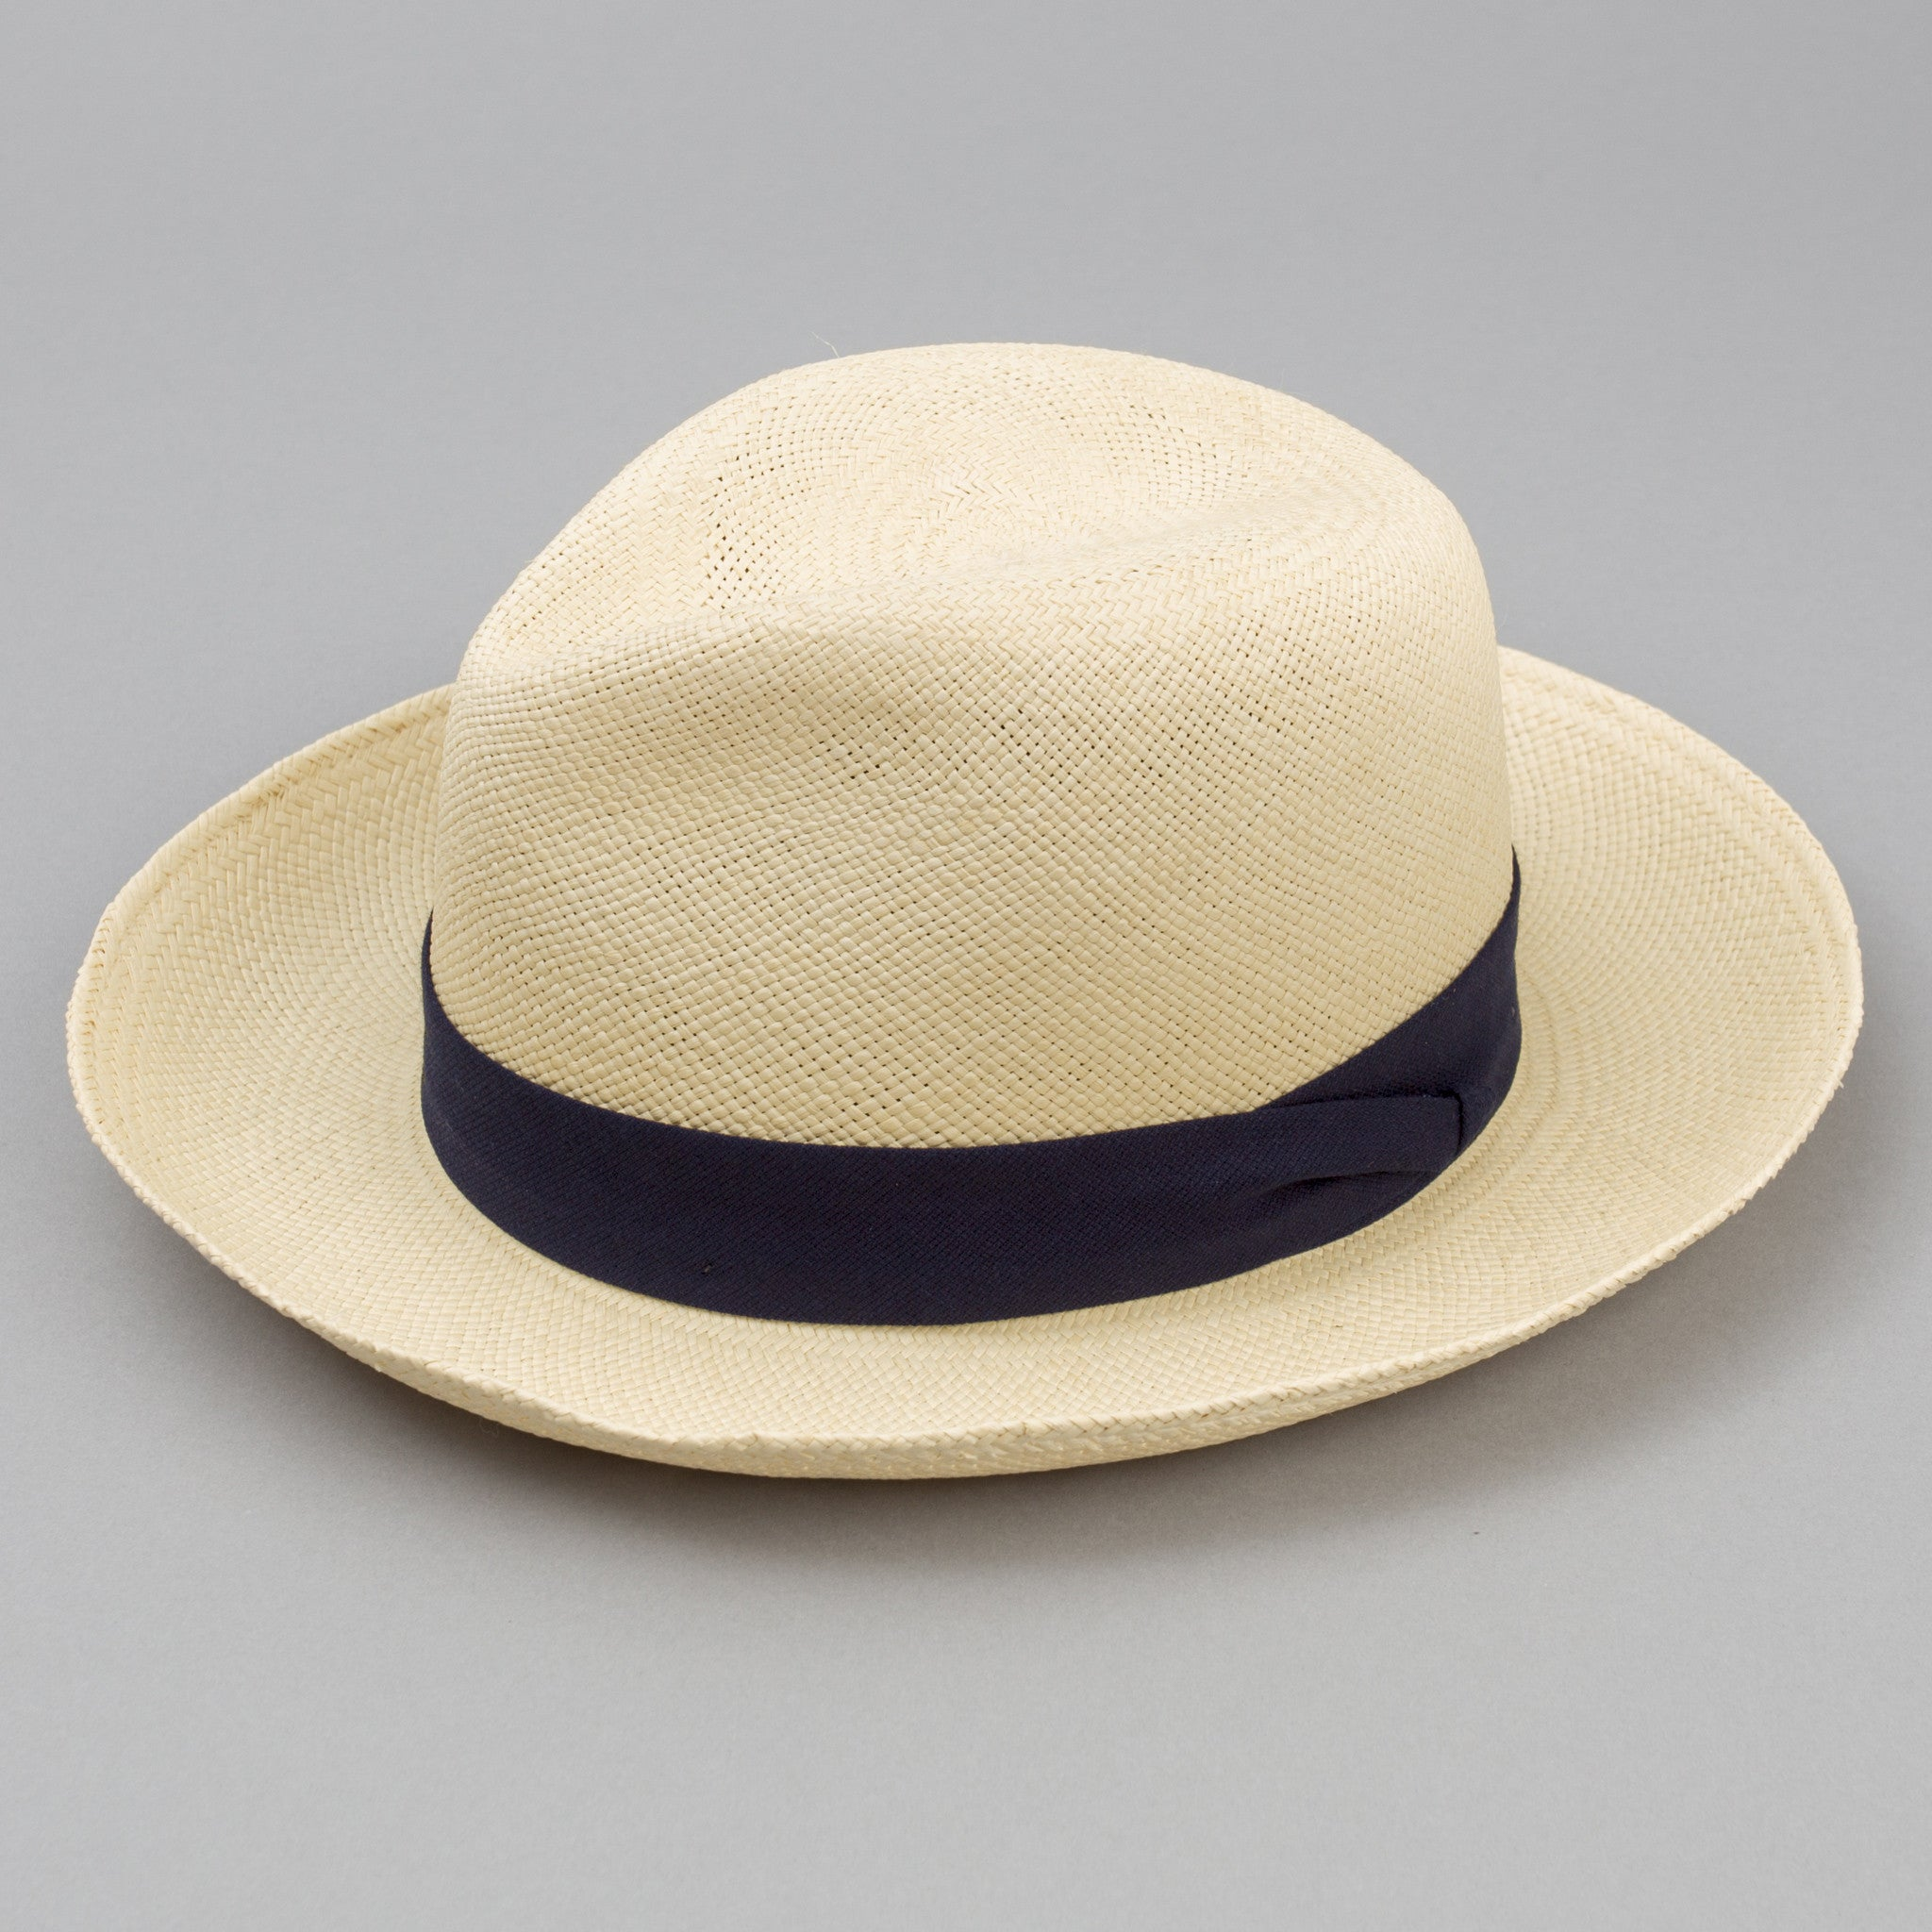 The Hill-Side - Genuine Toquilla Palm Straw Panama Hat - HA3-072